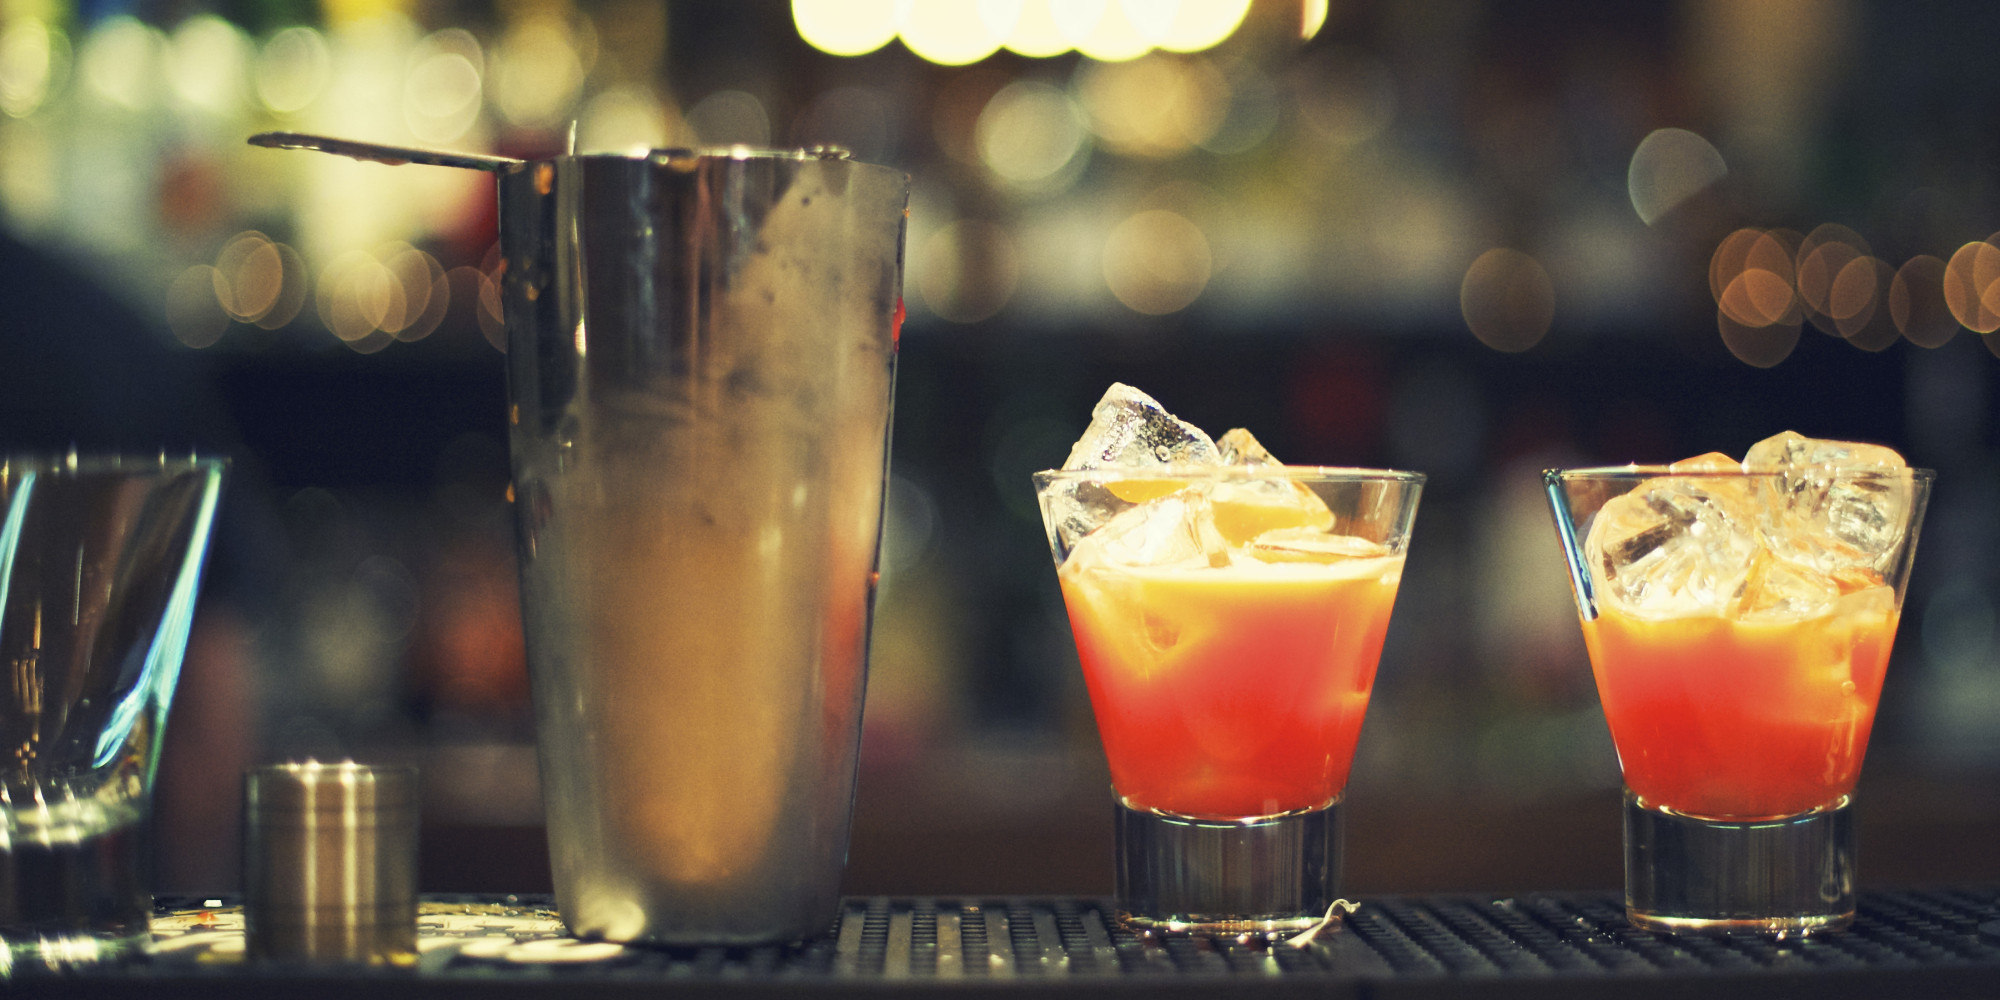 Restaurant owners hire bar consultants to write bartender training manuals and conduct bartender training. is common Owners realize bar consultants deliver non-biased professional opinions. Unfortunately, restaurant owners unwilling to hire bar consultants will continue to fail.